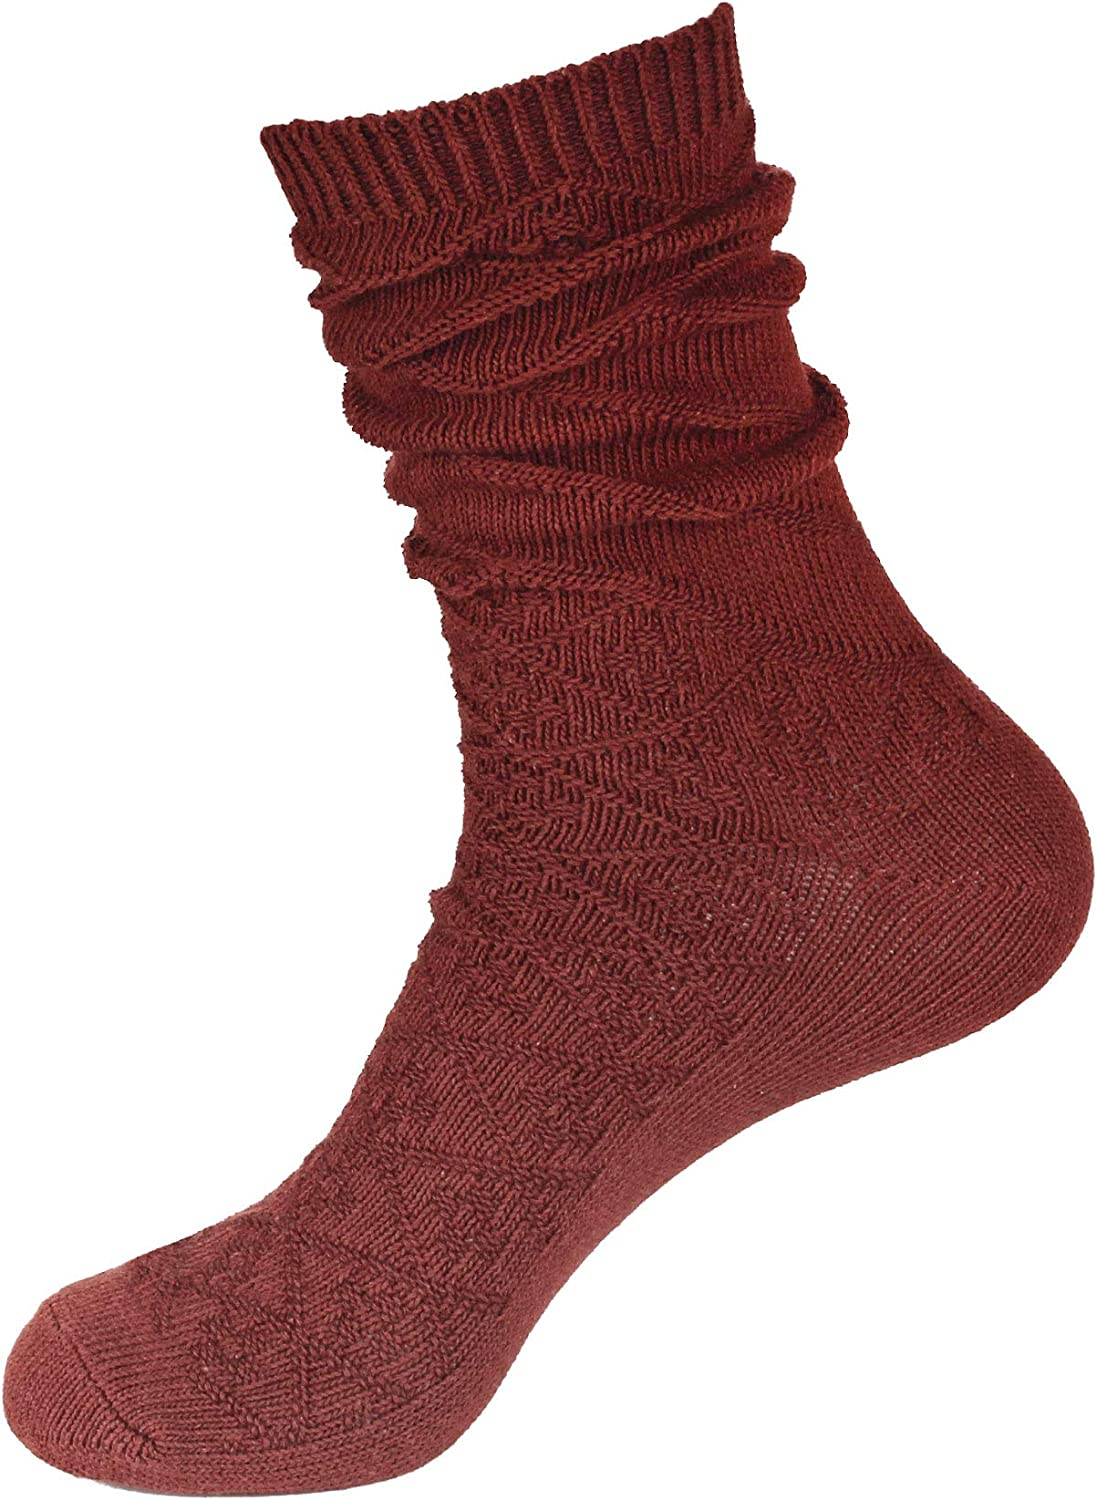 BambooMN Women's Vintage Pattern Style Cotton Casual Knitting Comfy Retro Warm Boot Crew Socks, 3 Pairs Wine